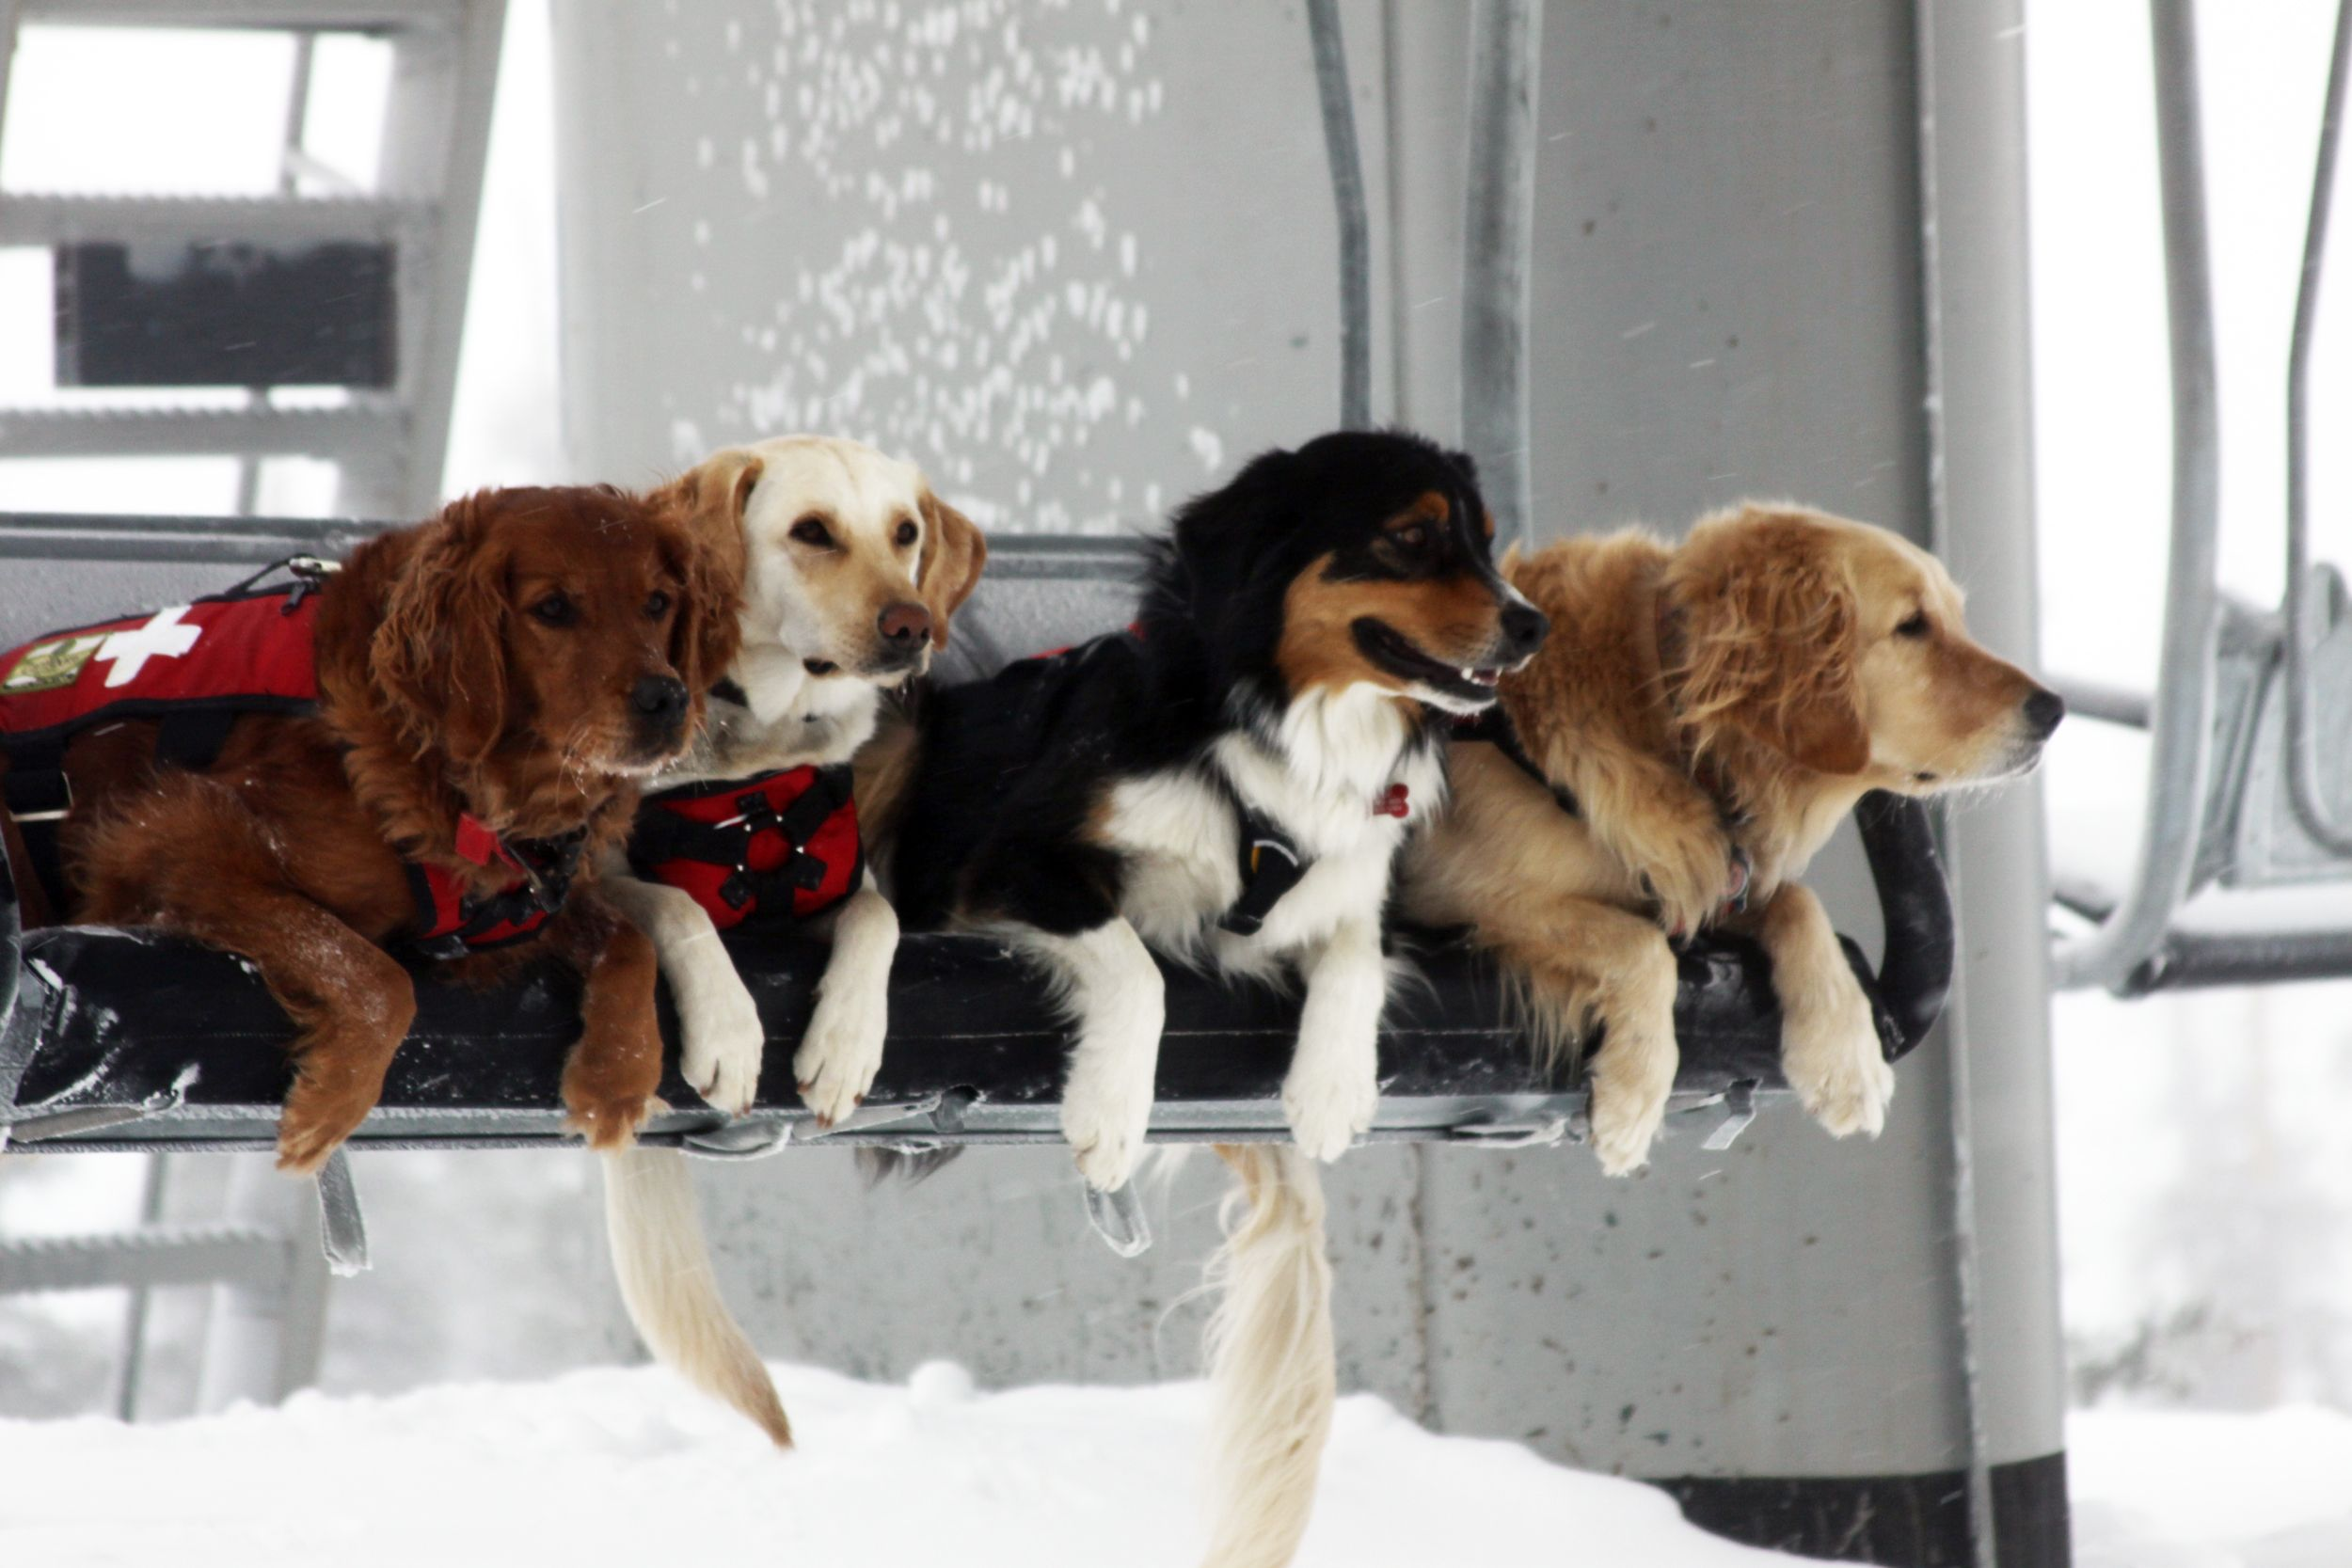 Our Incredible Cute And Hard Working Ski Patrol Dogs For The 13 14 Season Dogs Military Working Dogs Working Dogs